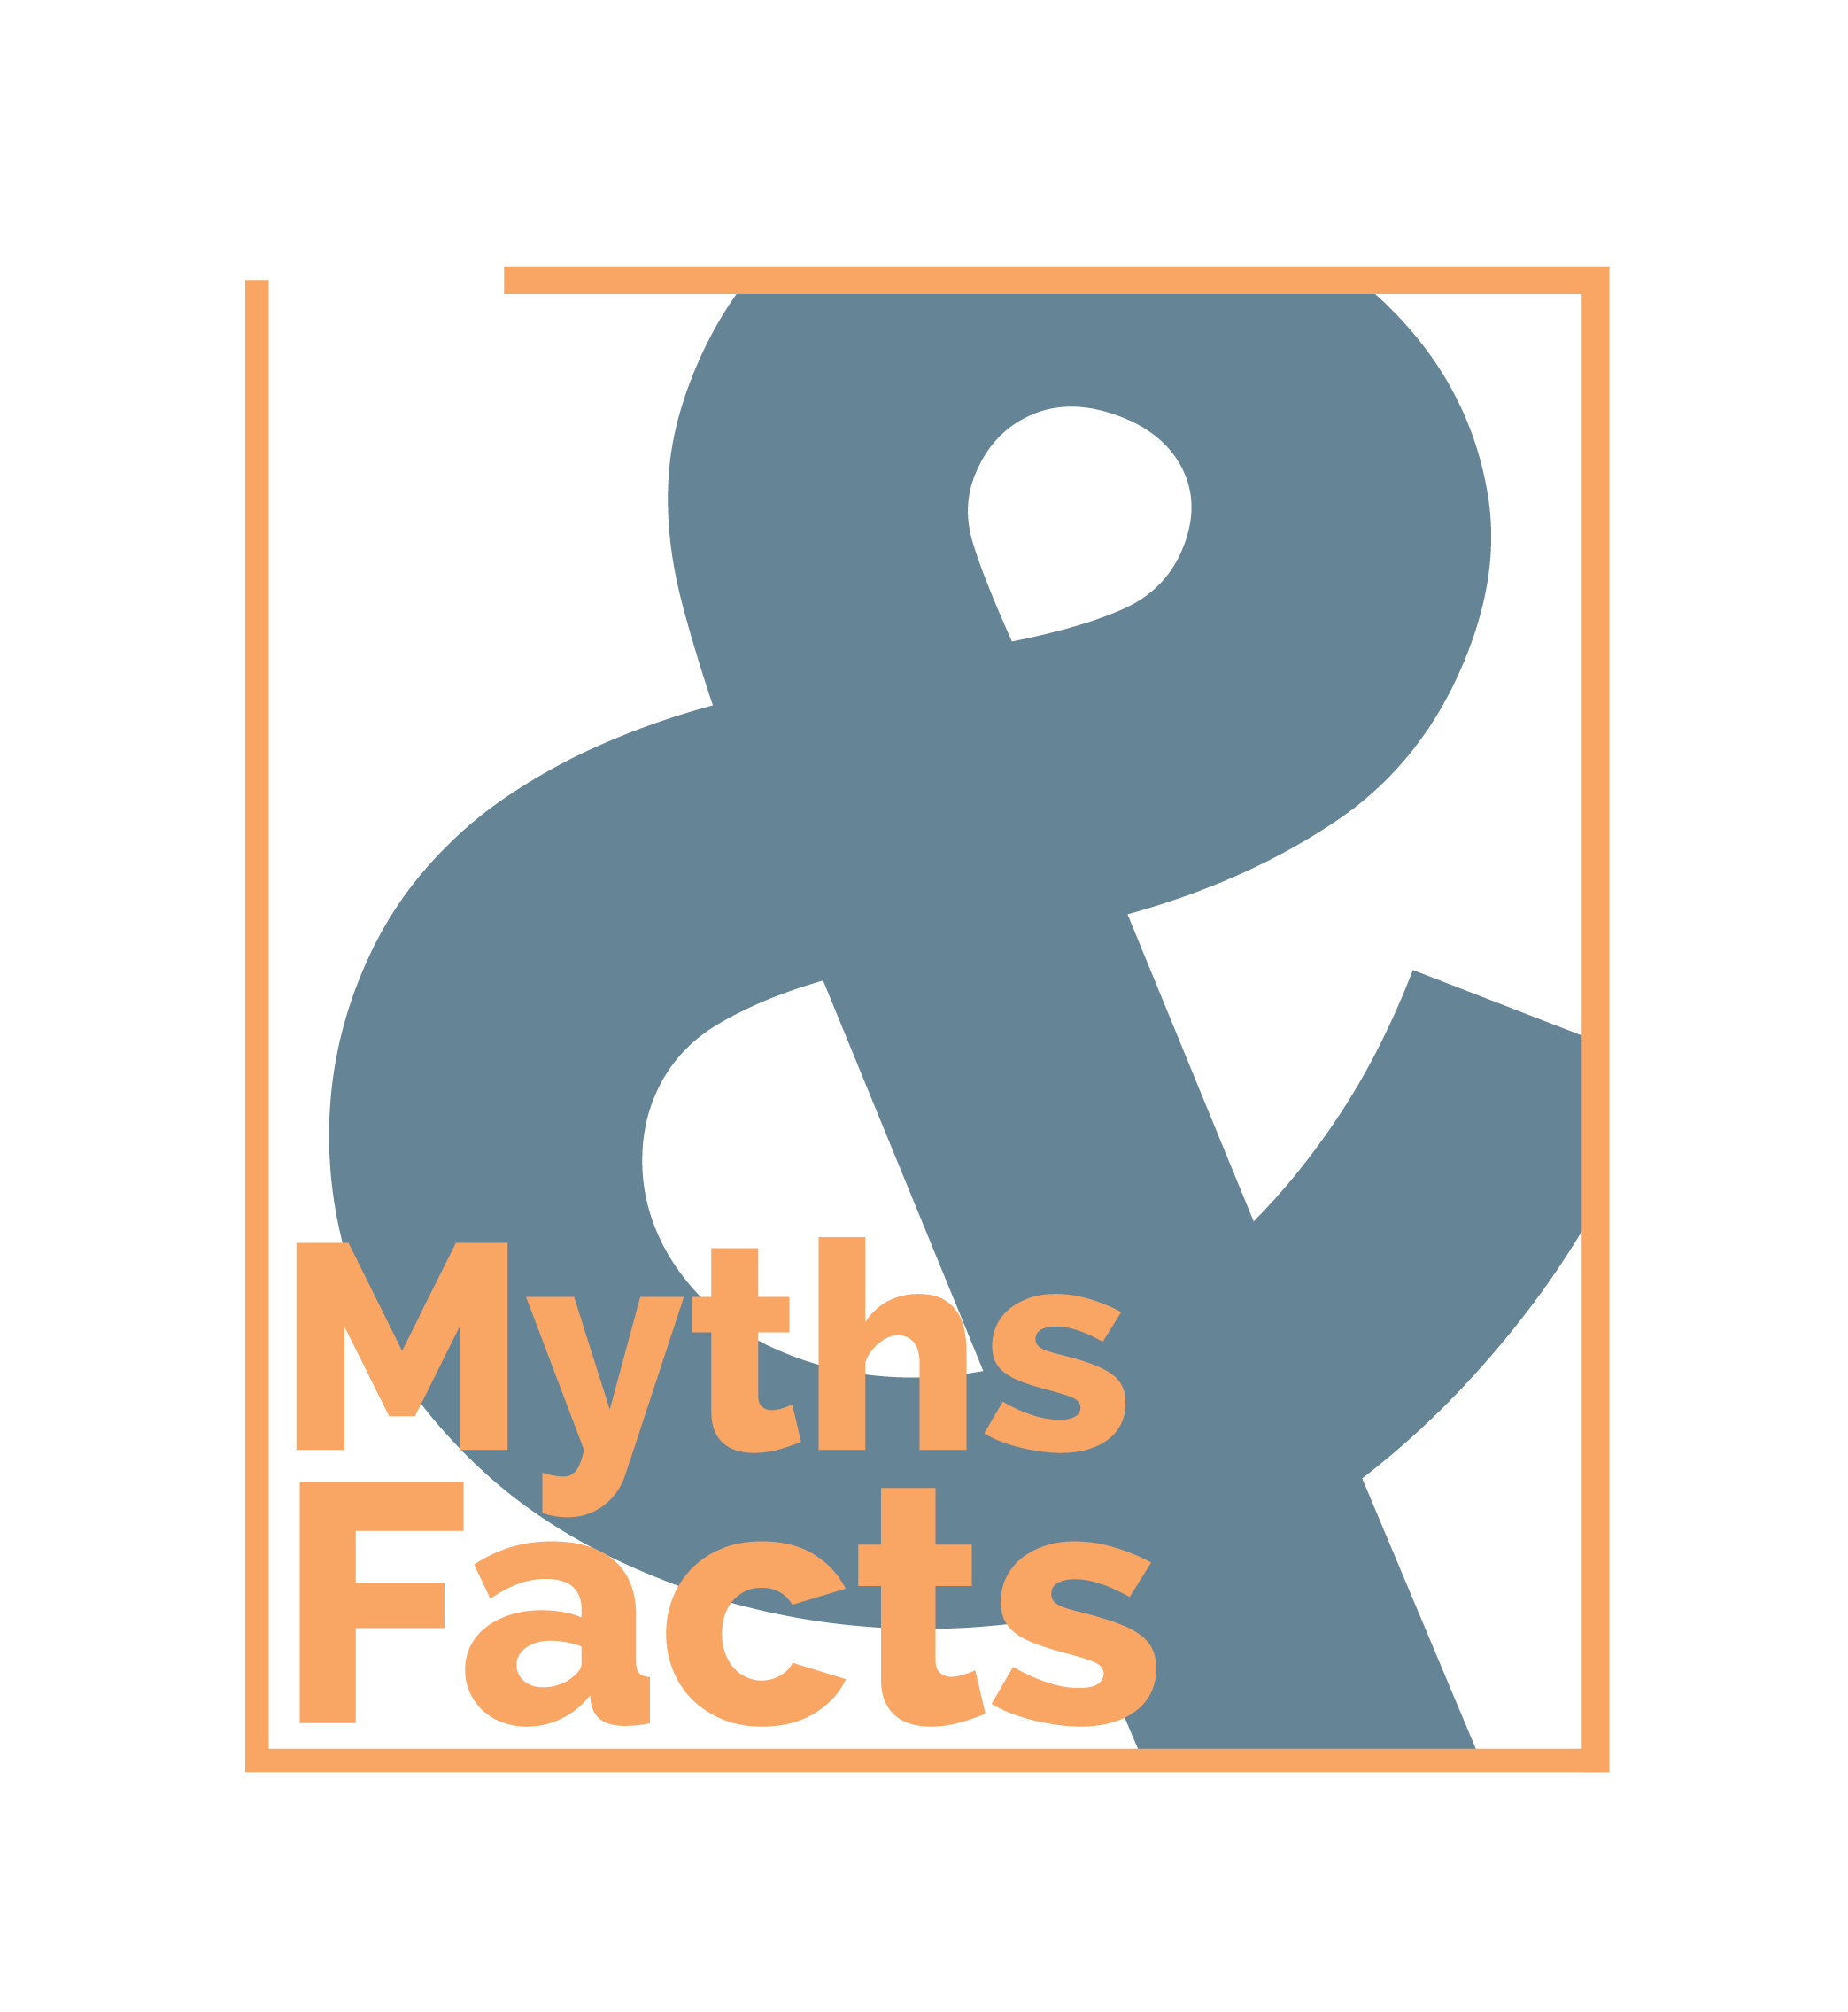 MYTH: Borderline Disorder is Not a Real Psychiatric Diagnosis. - FACT: There are times when it might feel that way, but the fact is the American Psychiatric Association has formally recognized Borderline Disorder (also known as Borderline Personality Disorder) since 1980. It's important you create a relationship with a clinician who is able to determine how the complex dimensions of Borderline Disorder may be at play in your life.